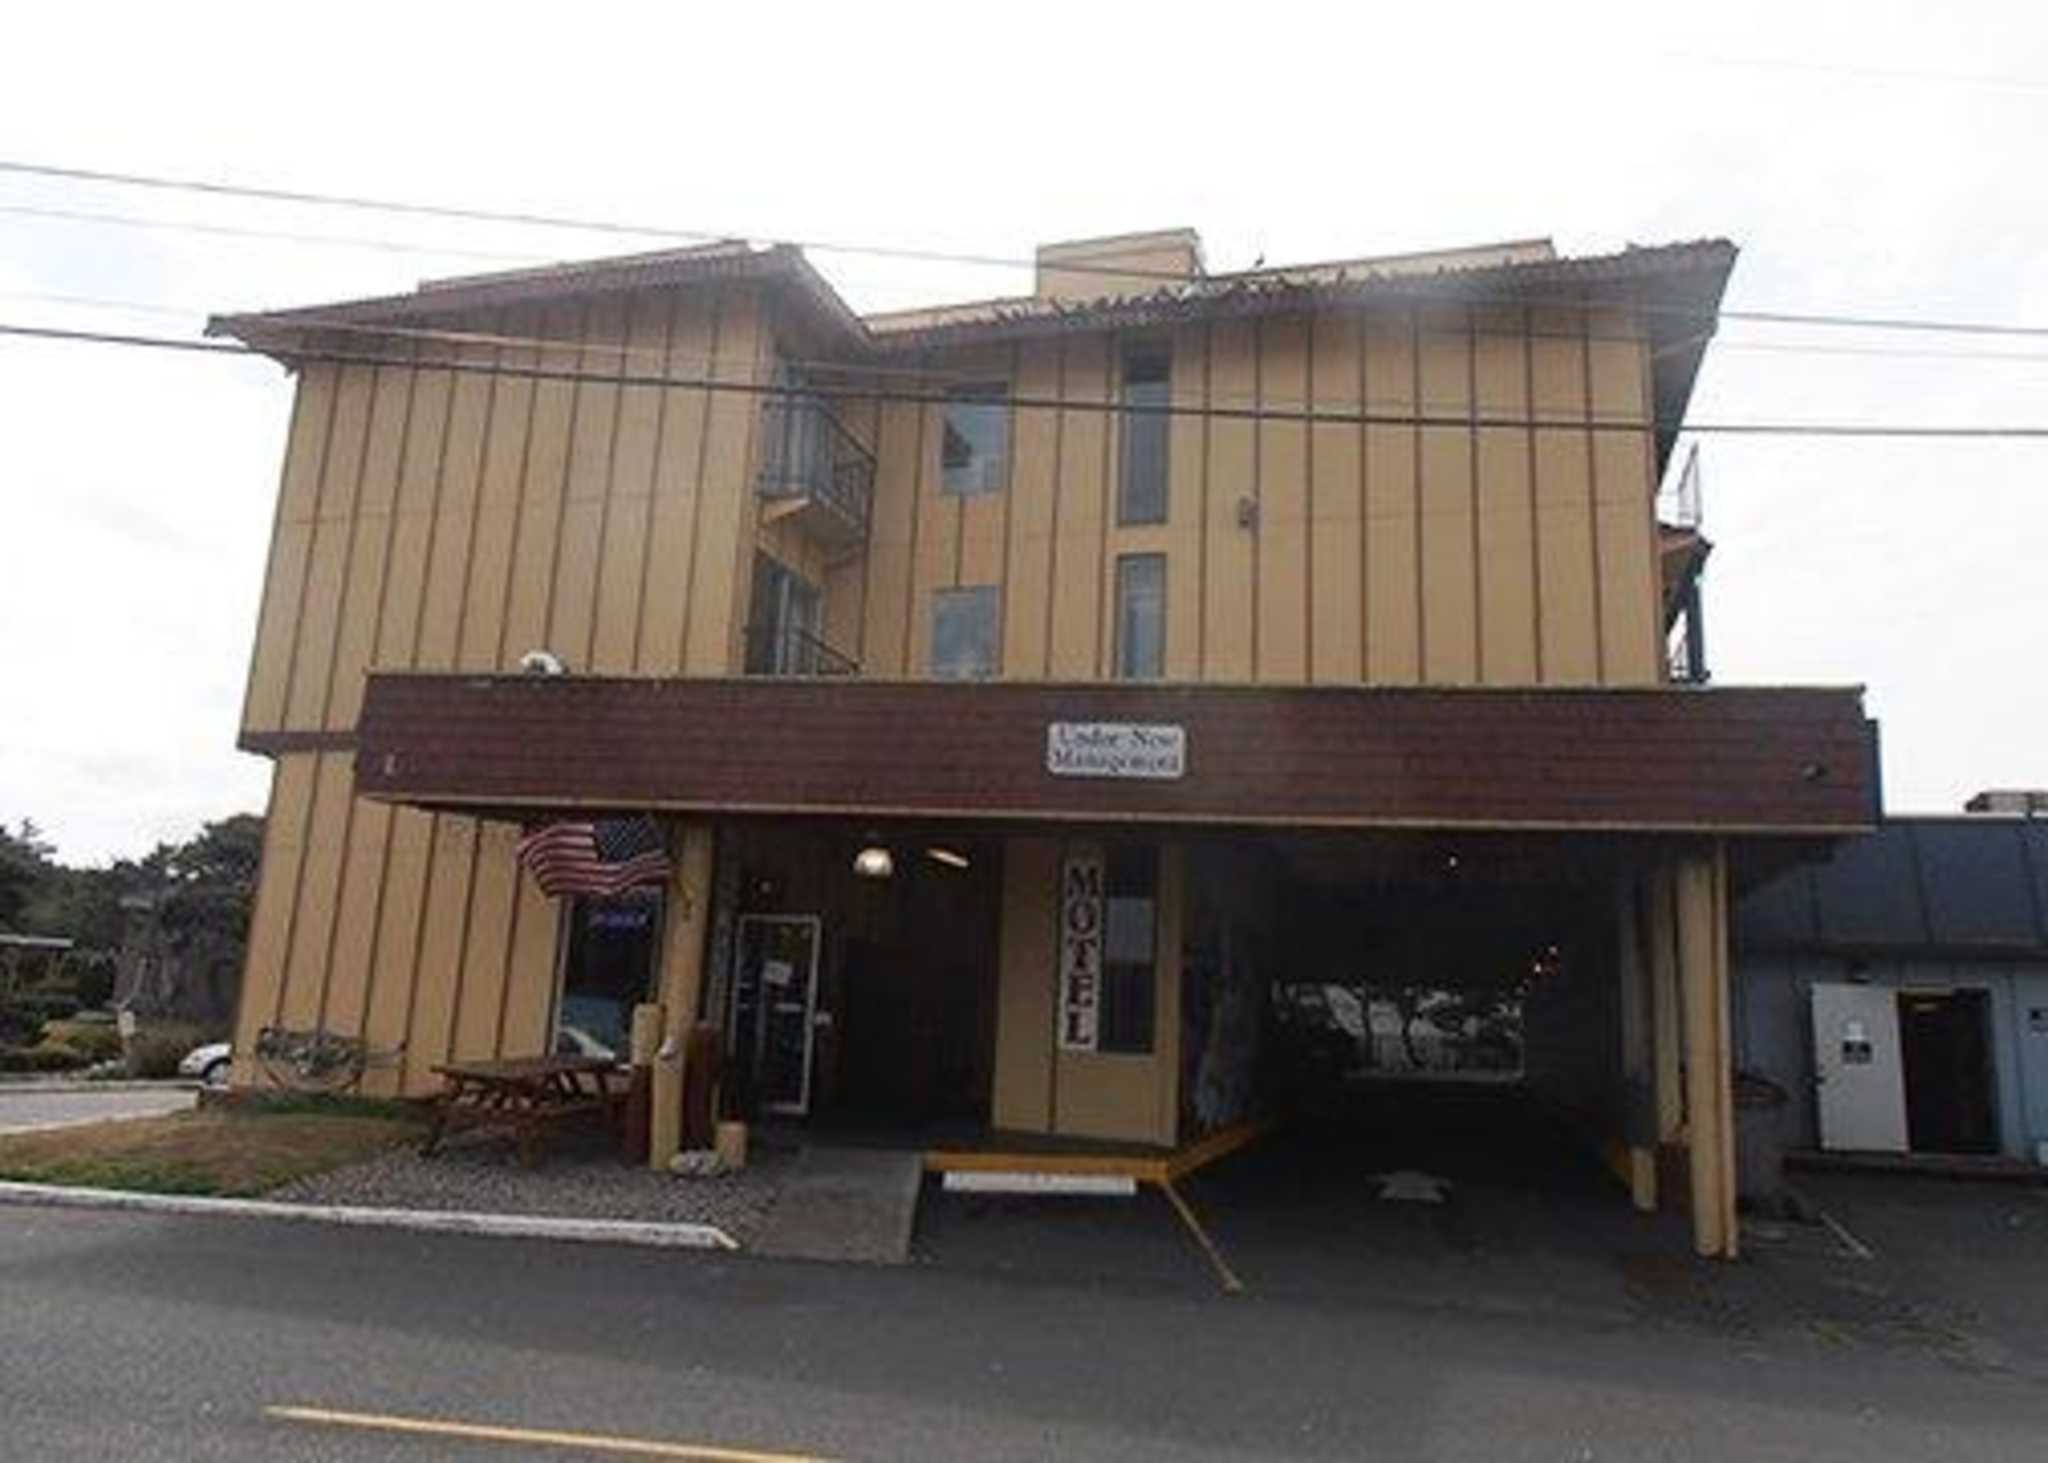 Rodeway Inn Amp Suites In Lincoln City Or 97367